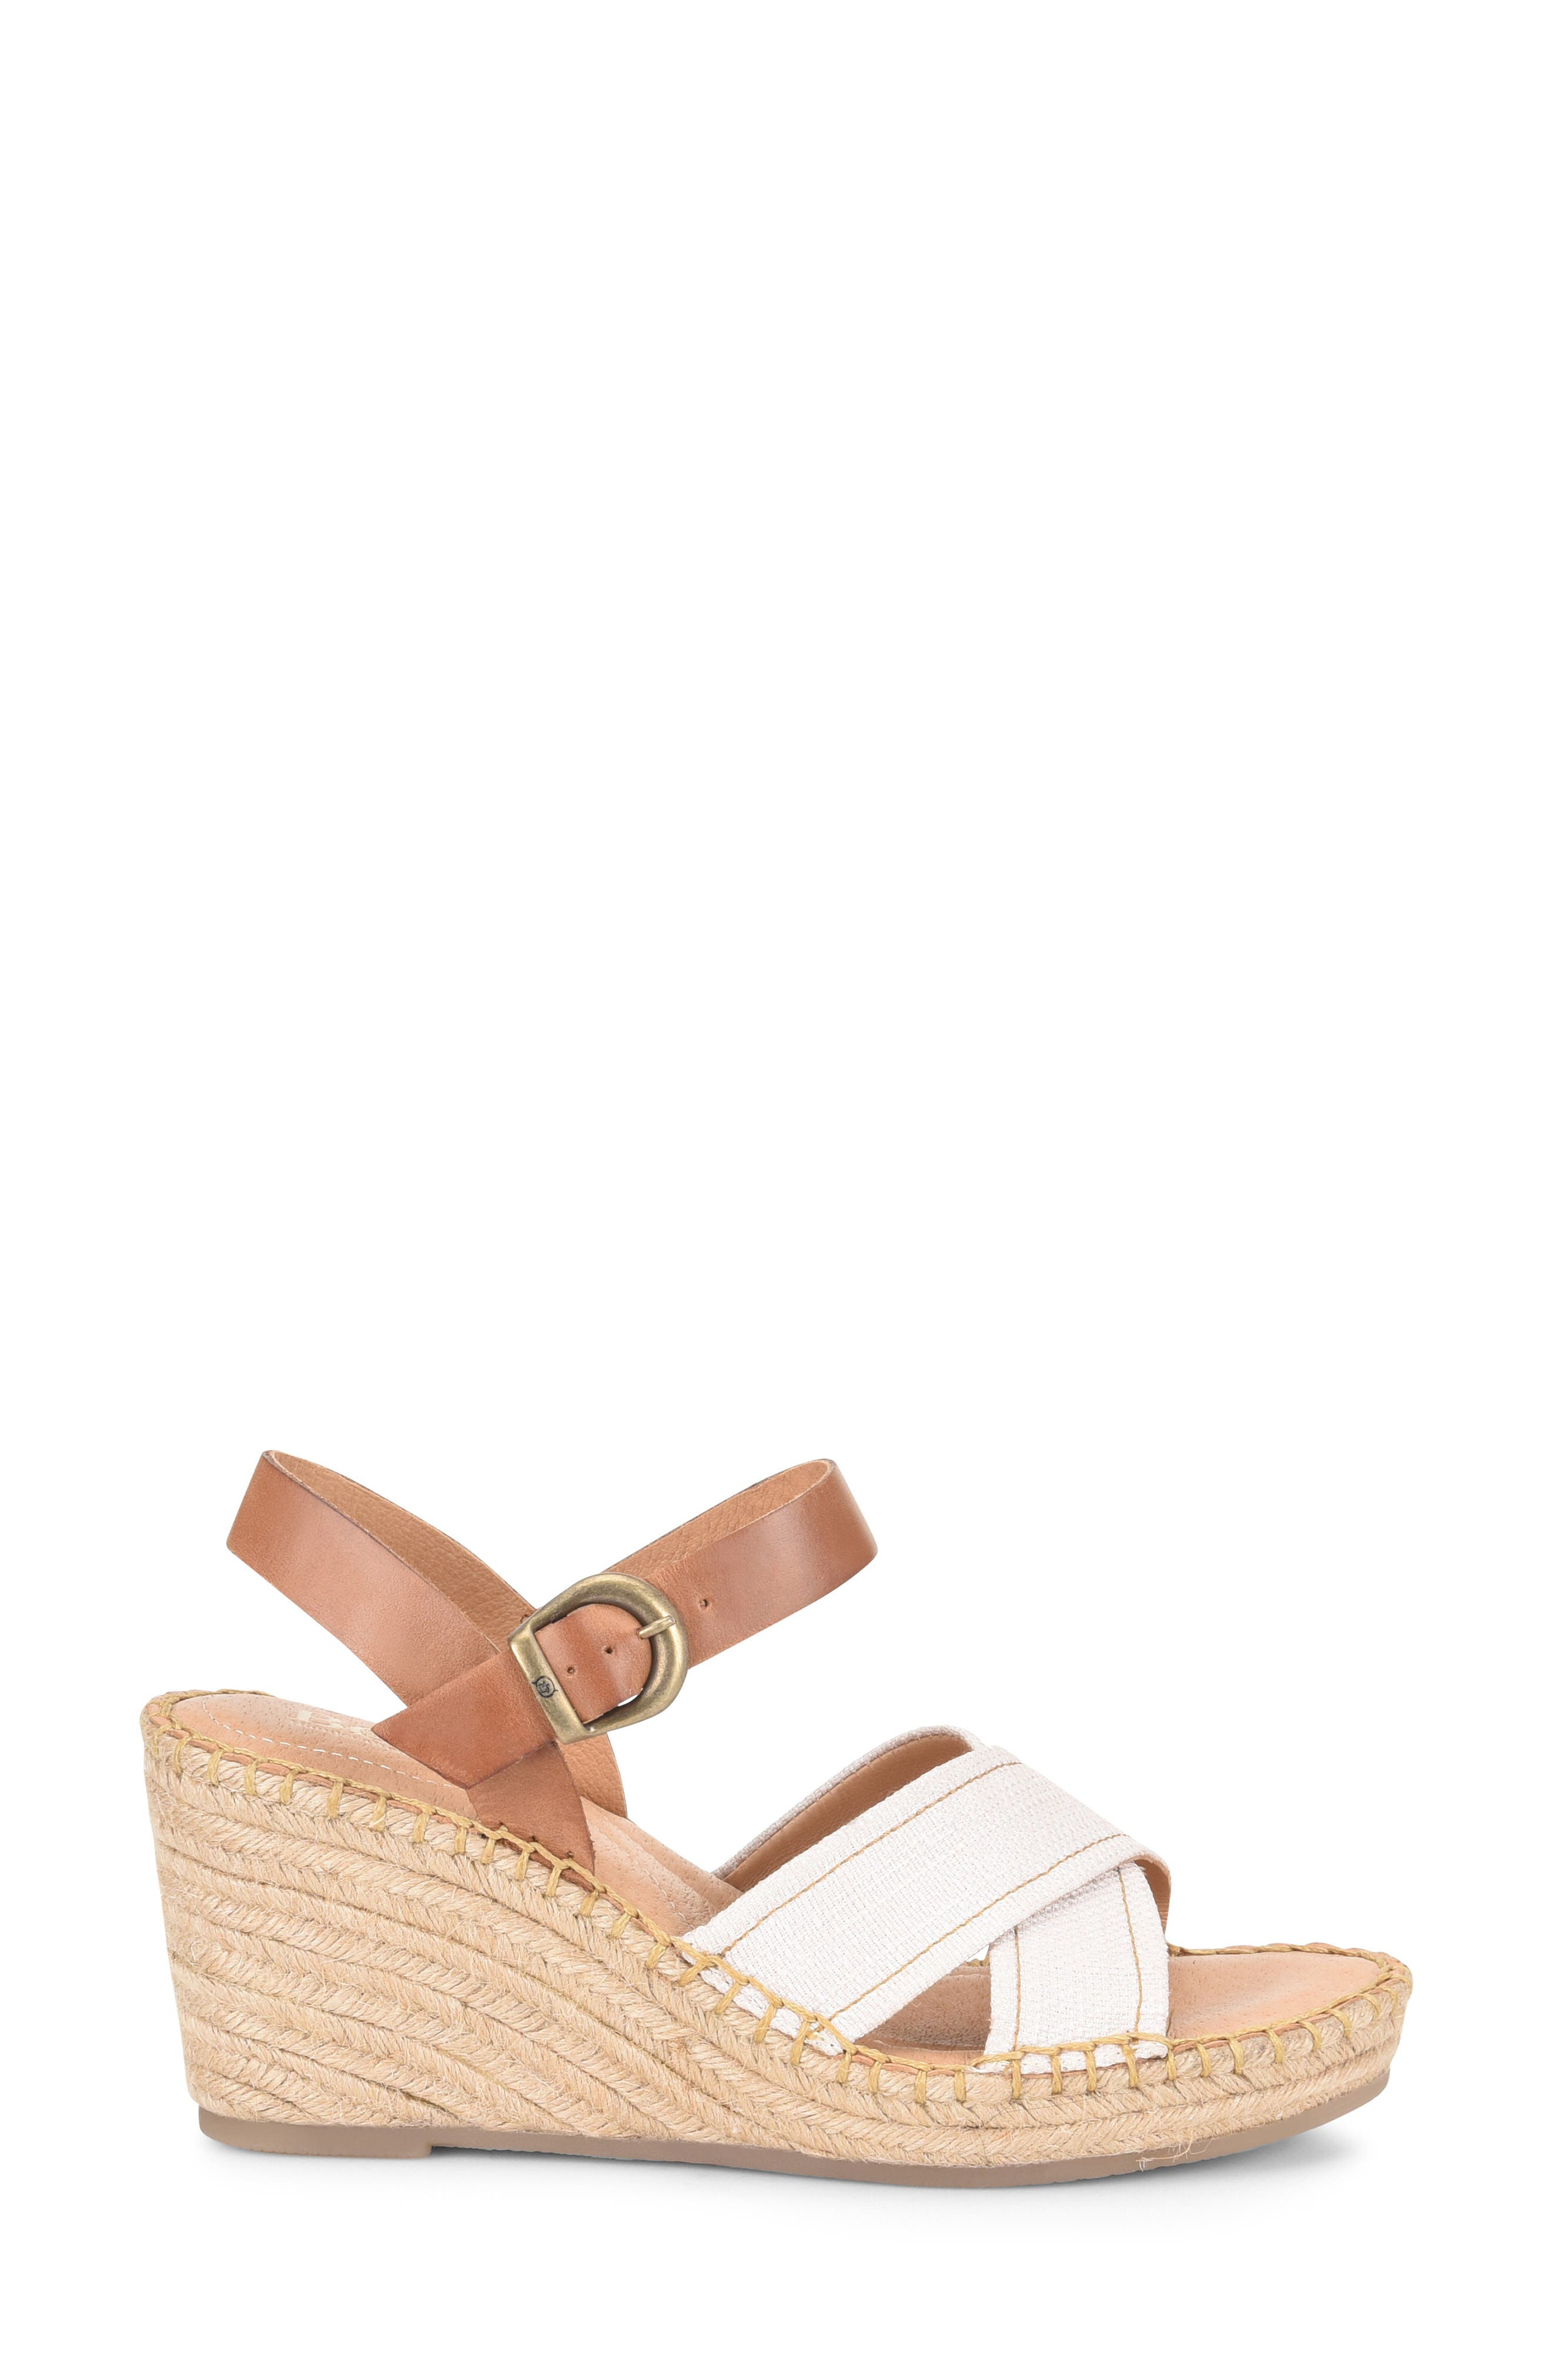 ,                             Payette Wedge Sandal,                             Alternate thumbnail 3, color,                             NATURAL/ TAN LEATHER